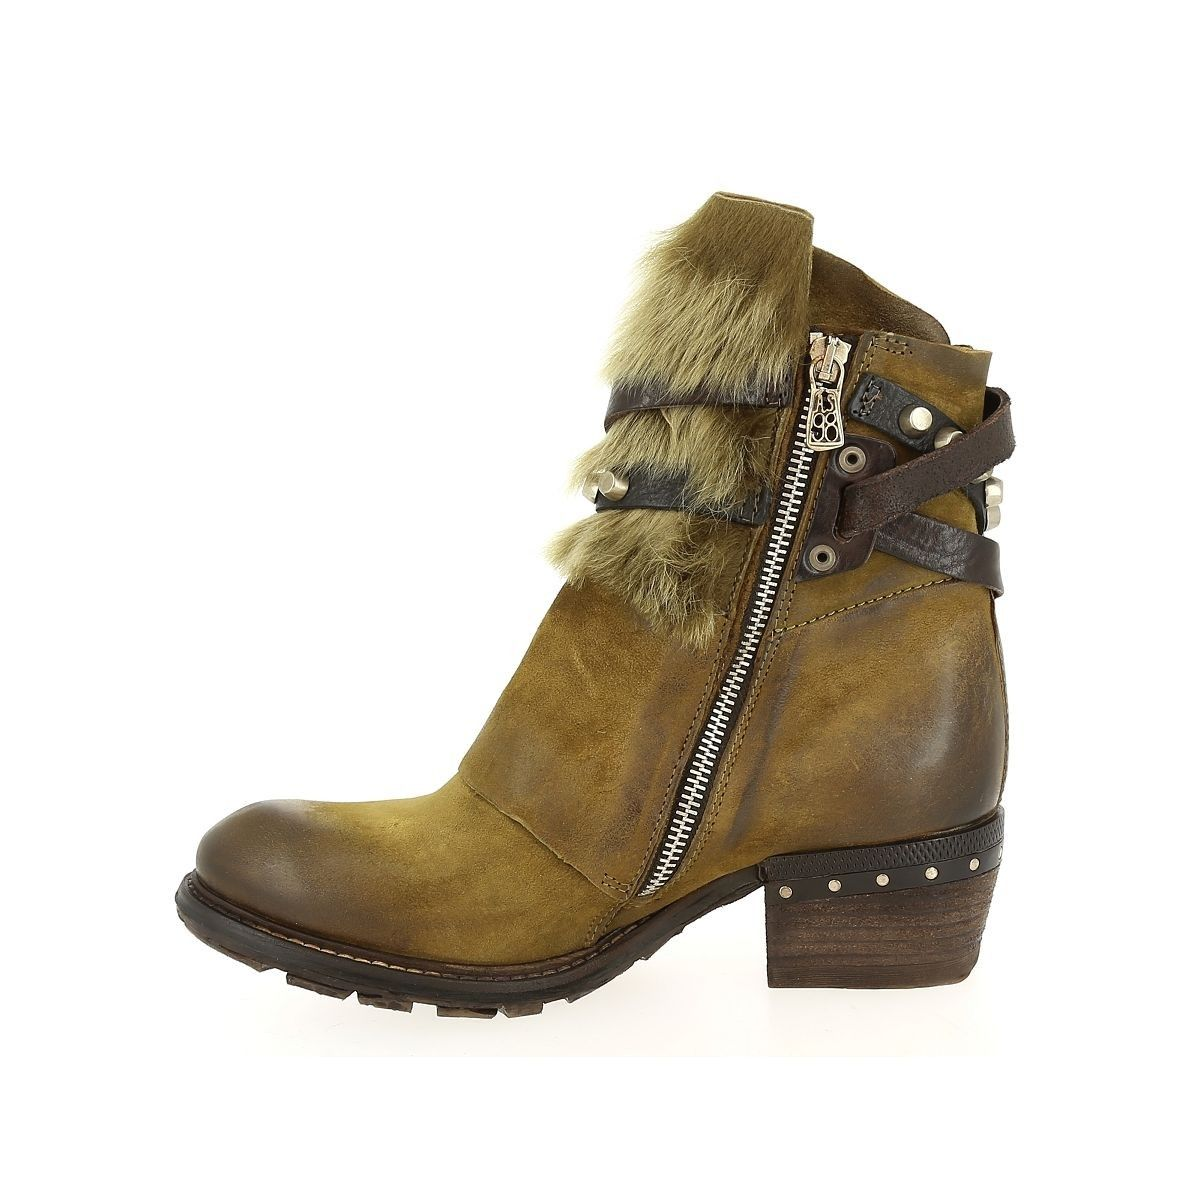 As98 239206 Bottines Air Step Taille37;38;39 Et Boots dBrCWoxe